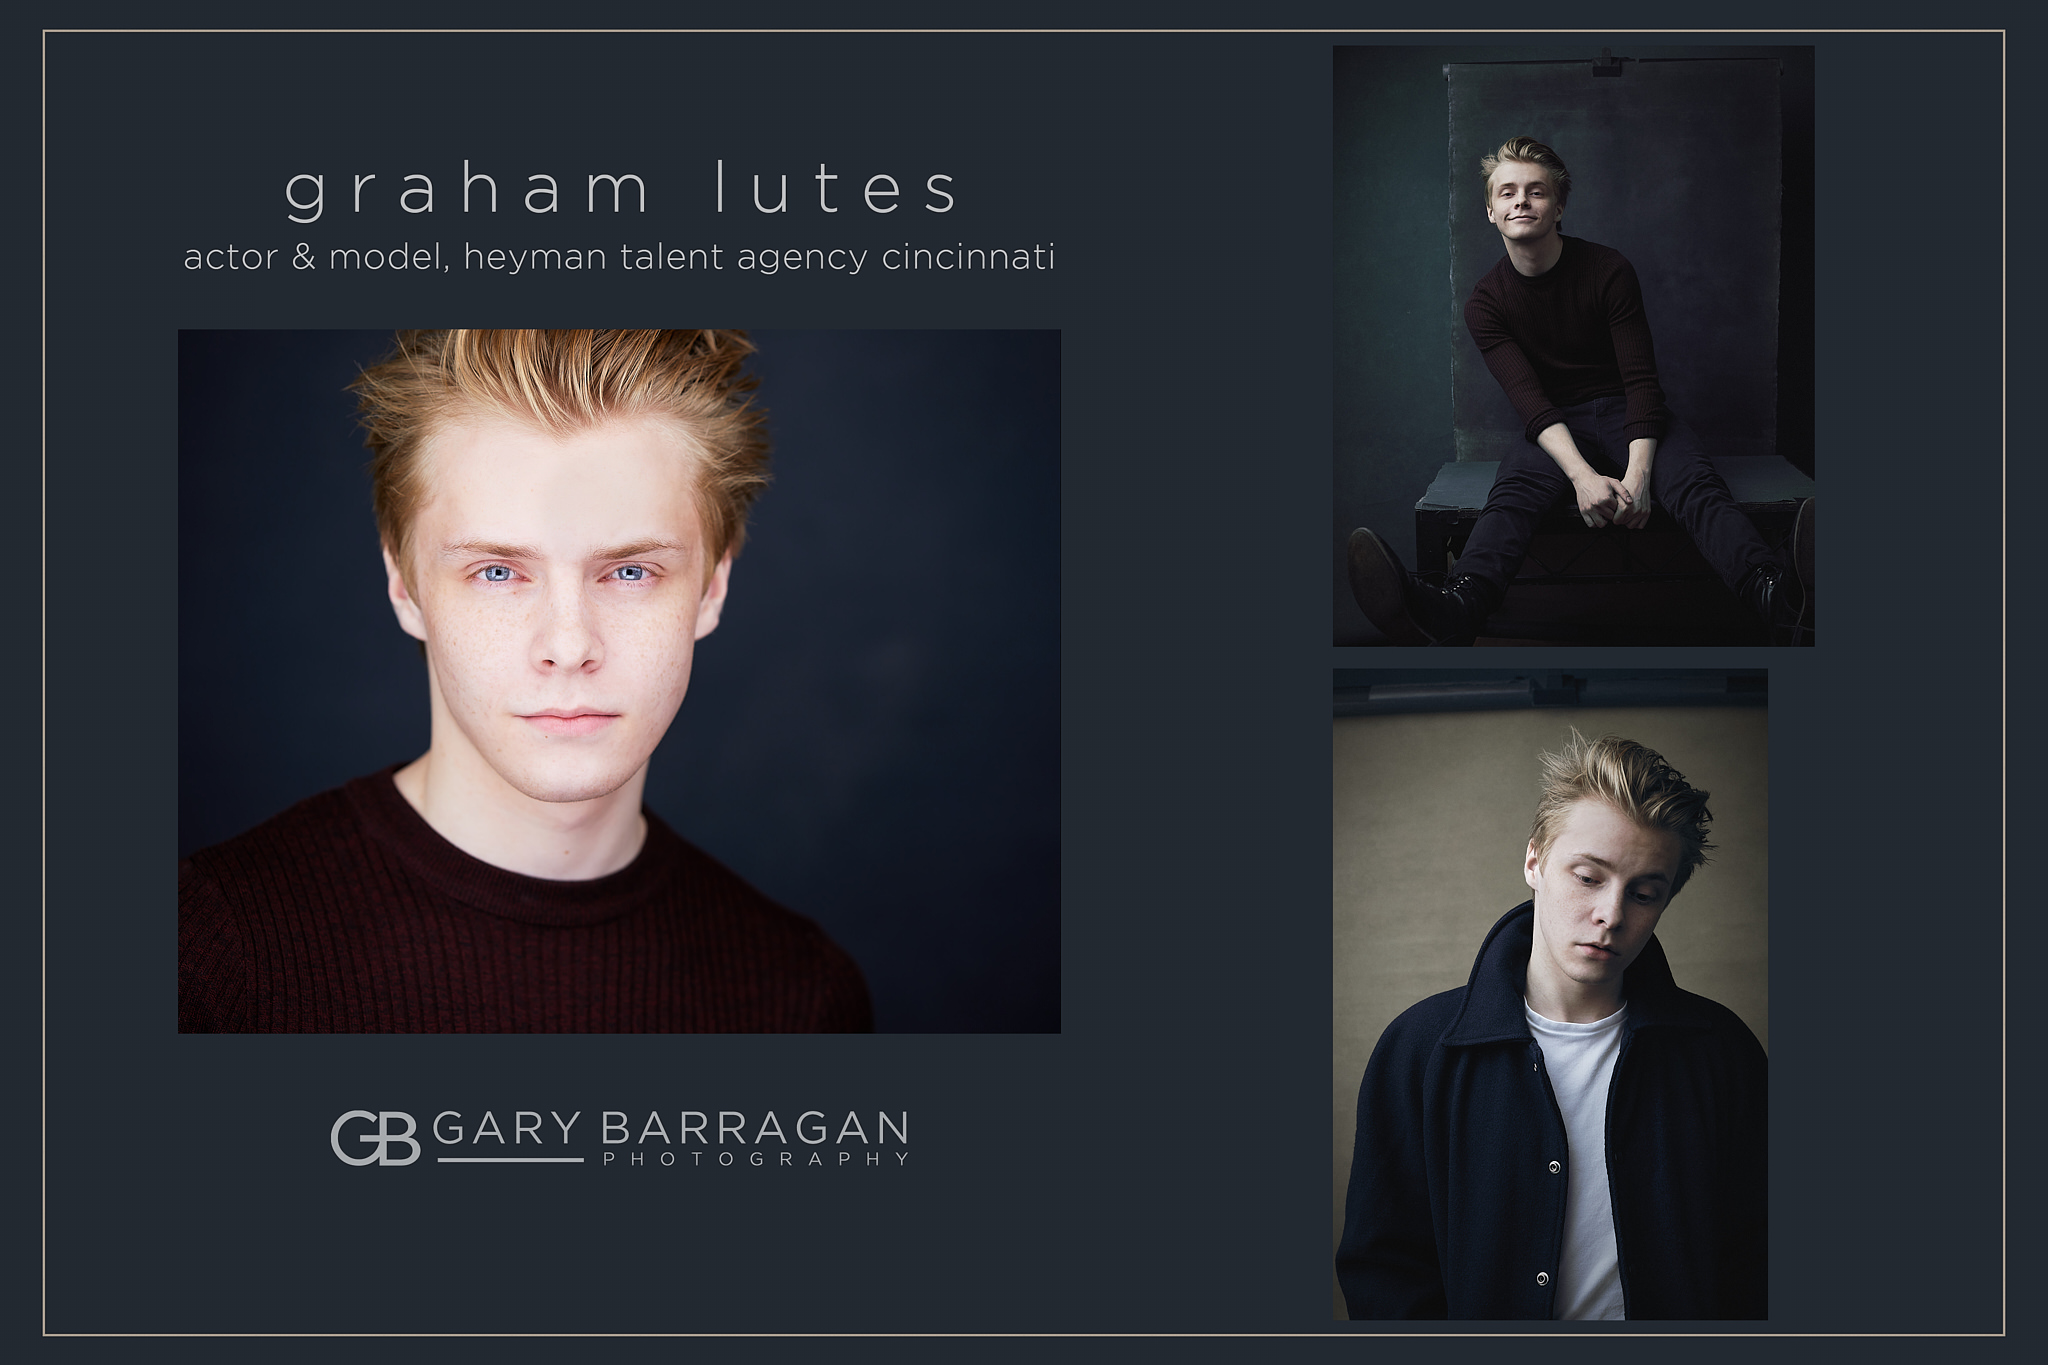 Graham Lutes for Heyman Talent Agency